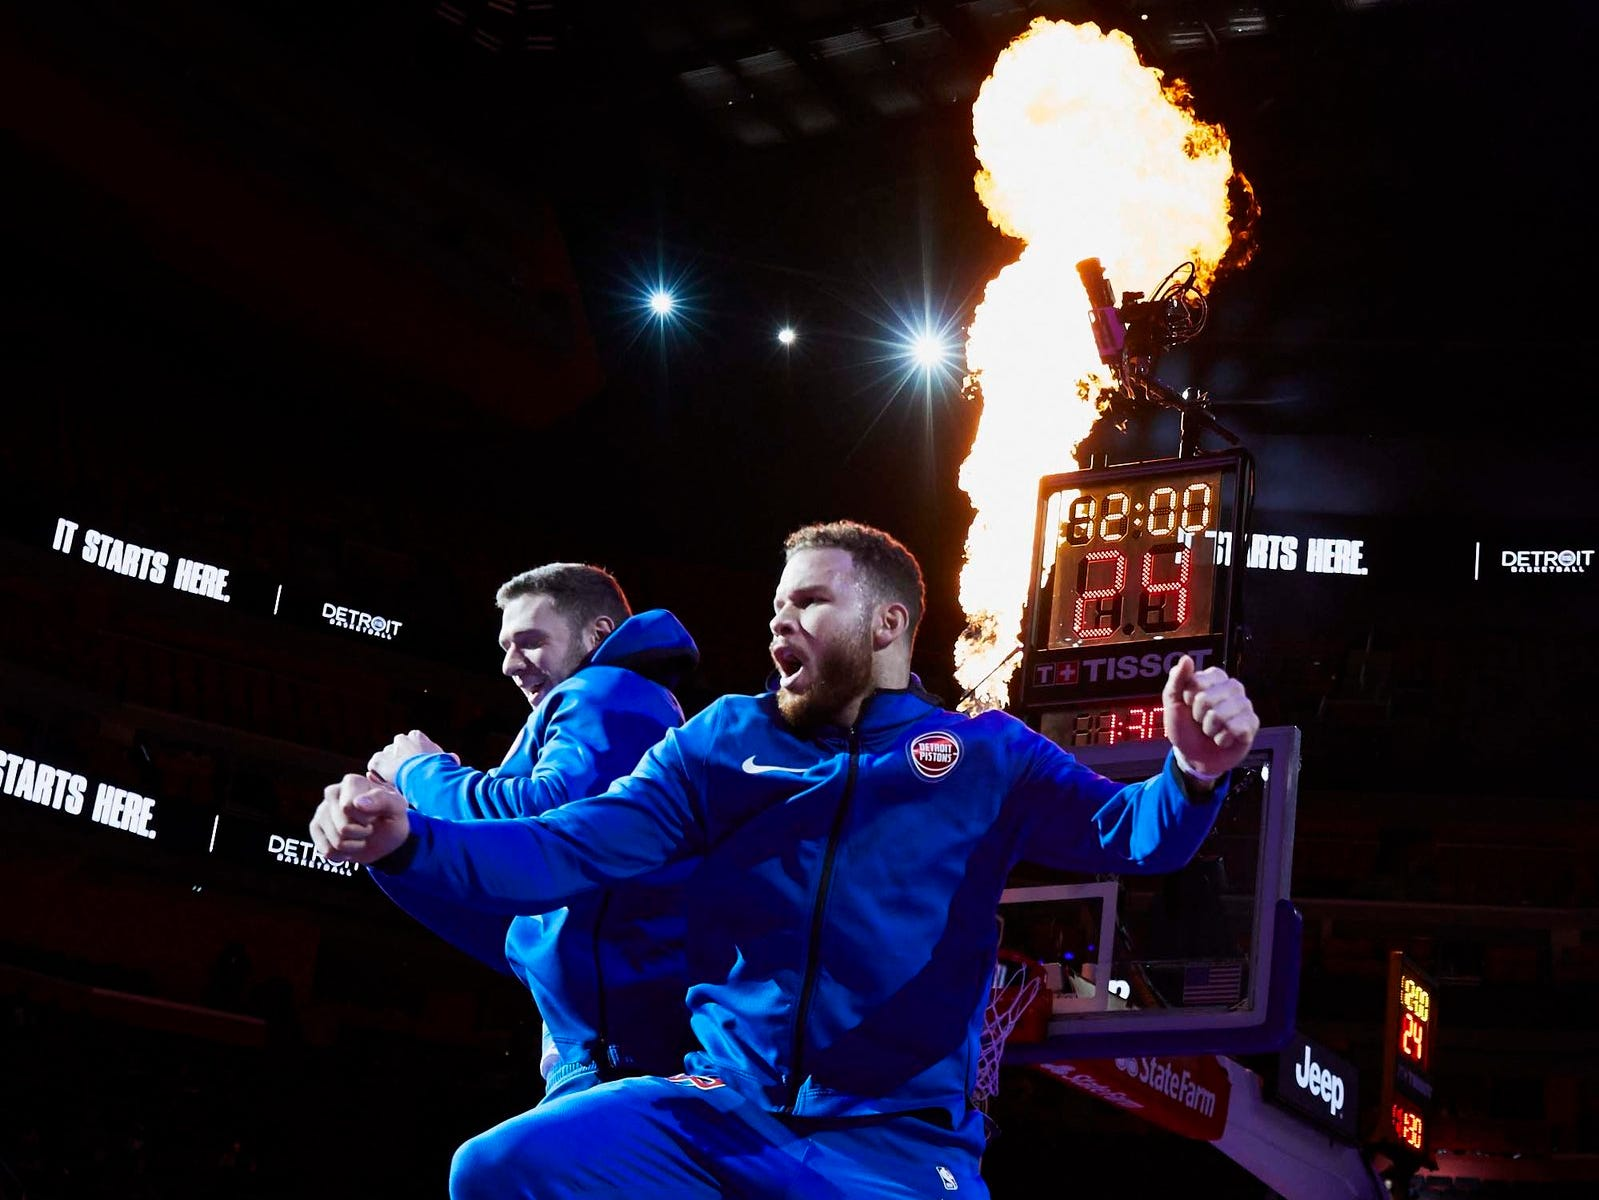 Detroit Pistons forward Blake Griffin (23) during player introductions prior to the game against the New York Knicks at Little Caesars Arena.